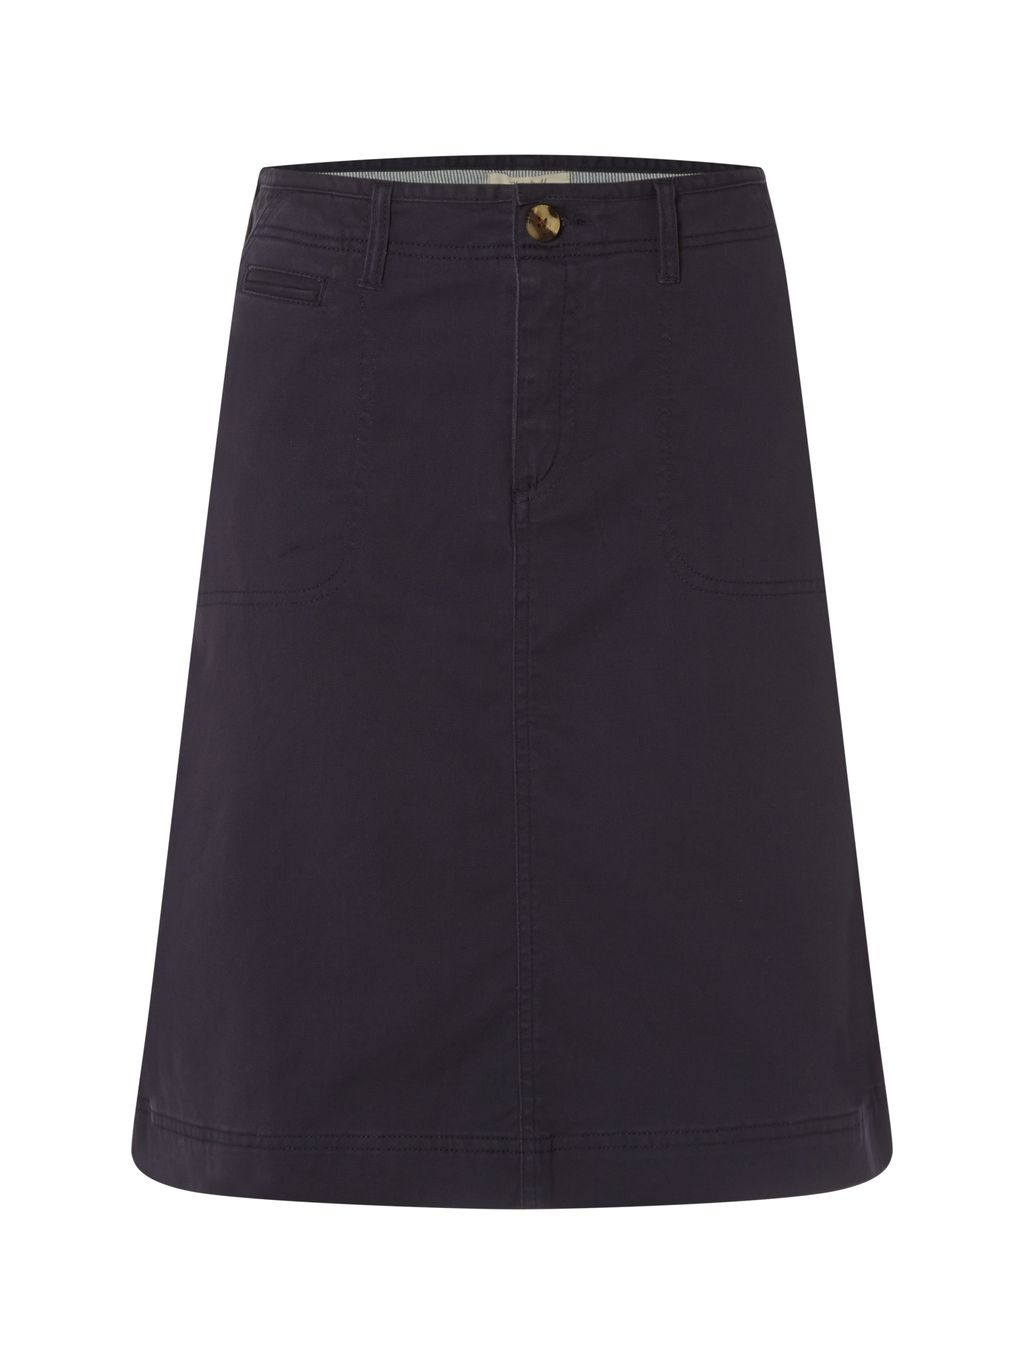 Heritage Chino Skirt, Navy - pattern: plain; fit: loose/voluminous; waist: high rise; predominant colour: navy; occasions: casual; length: on the knee; style: a-line; fibres: cotton - 100%; texture group: cotton feel fabrics; pattern type: fabric; season: s/s 2016